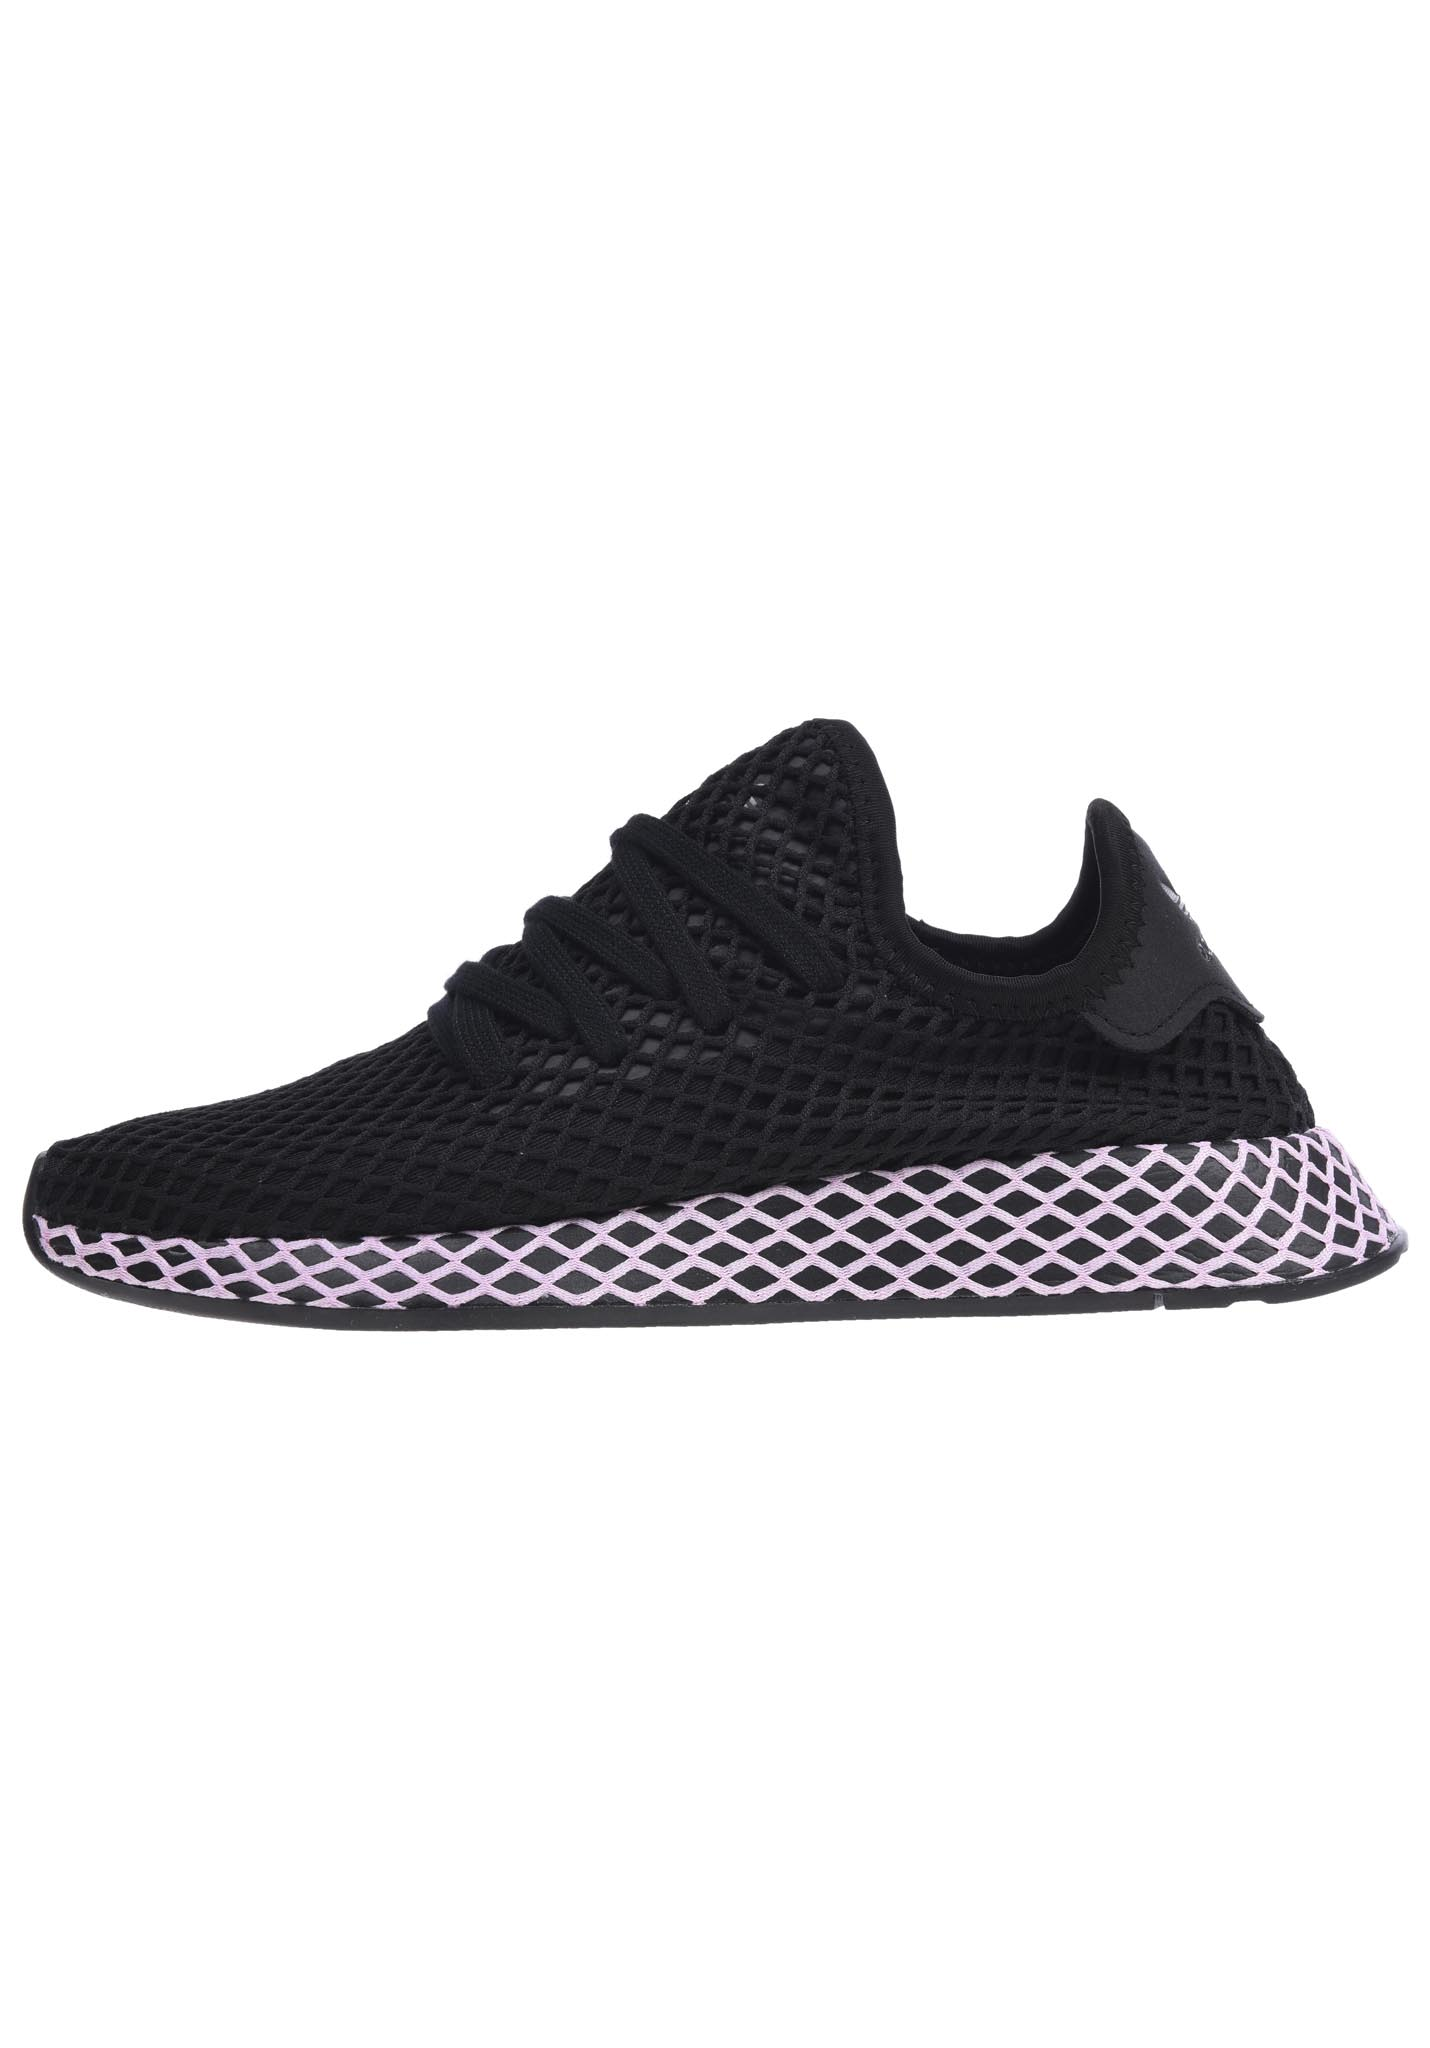 Adidas Deerupt Black : Adidas Online | Great Prices & Fast ...